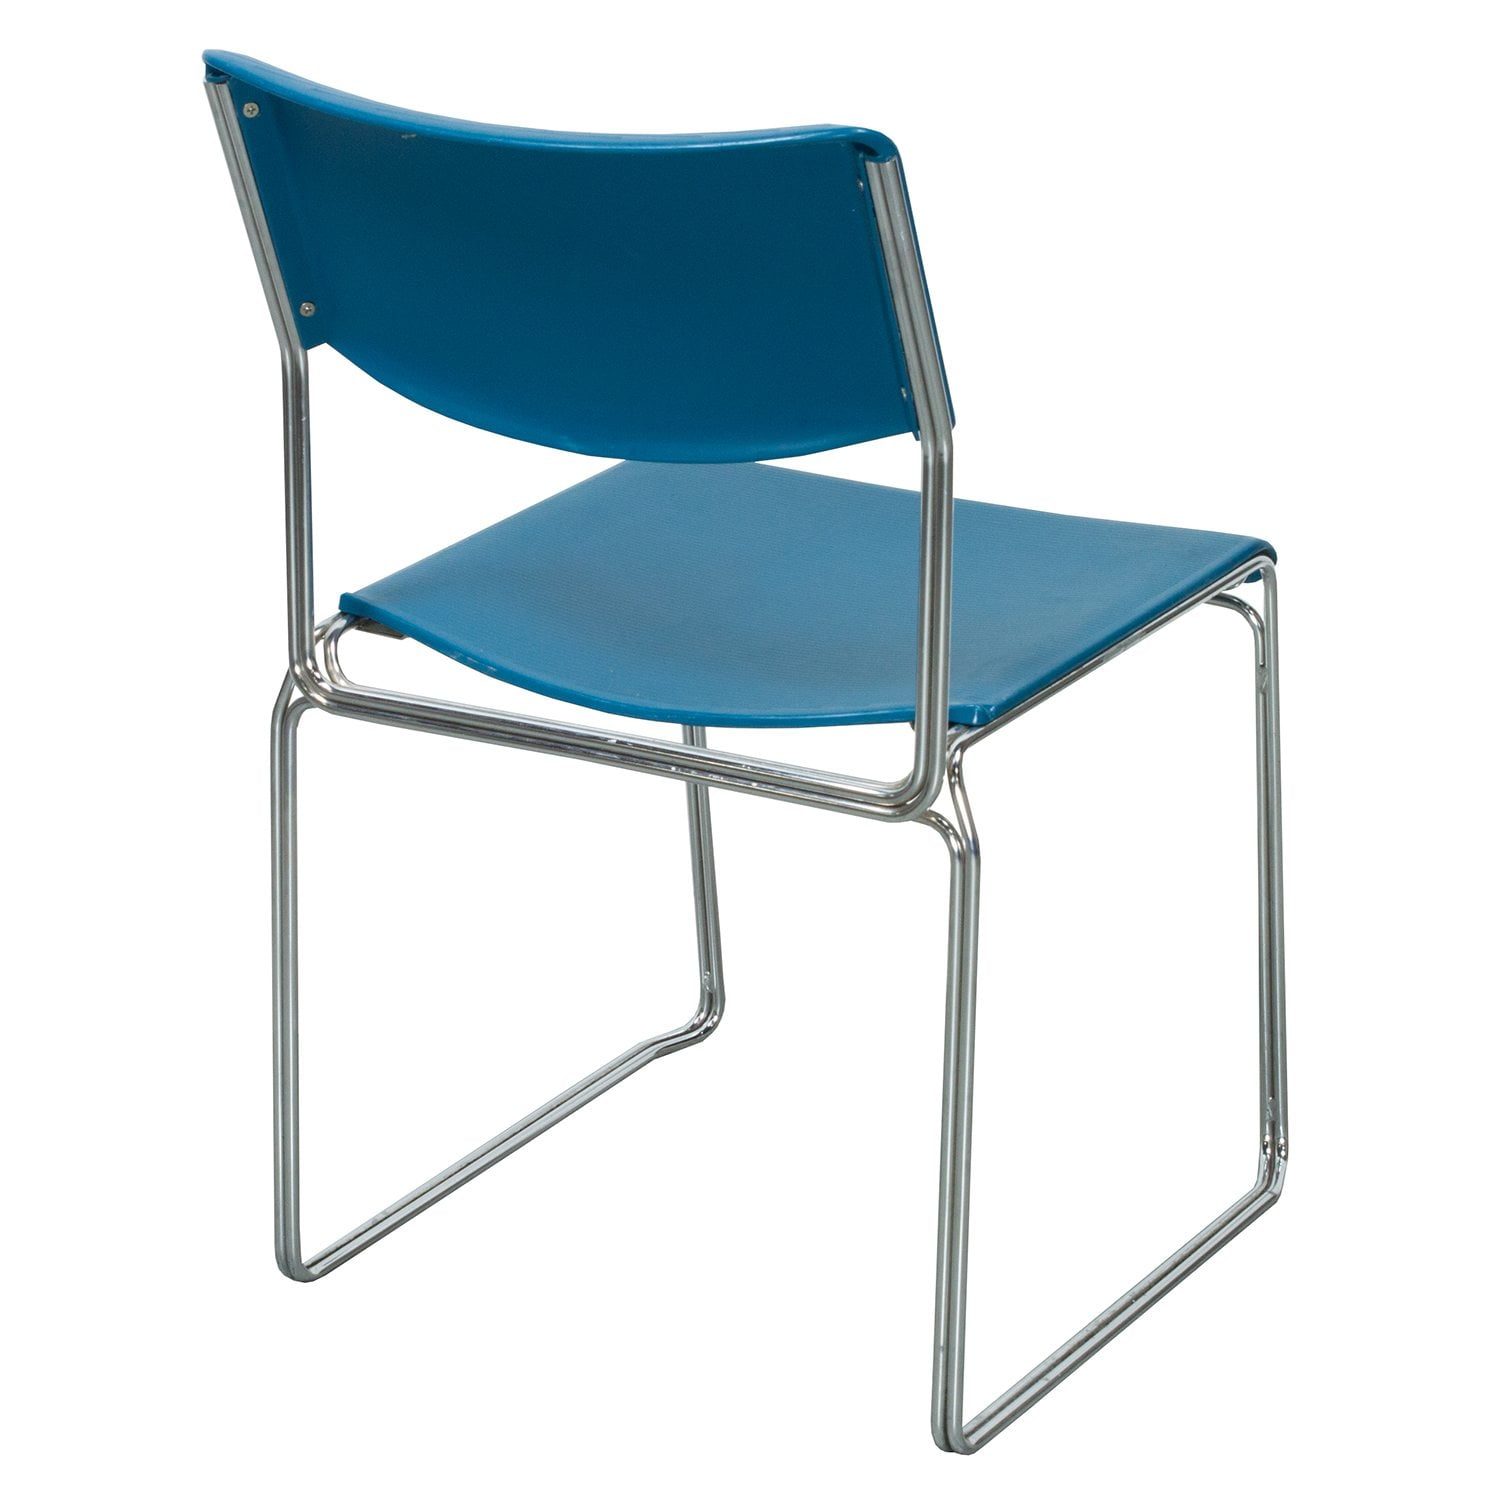 teal office chair wing covers canada comforto used stack national